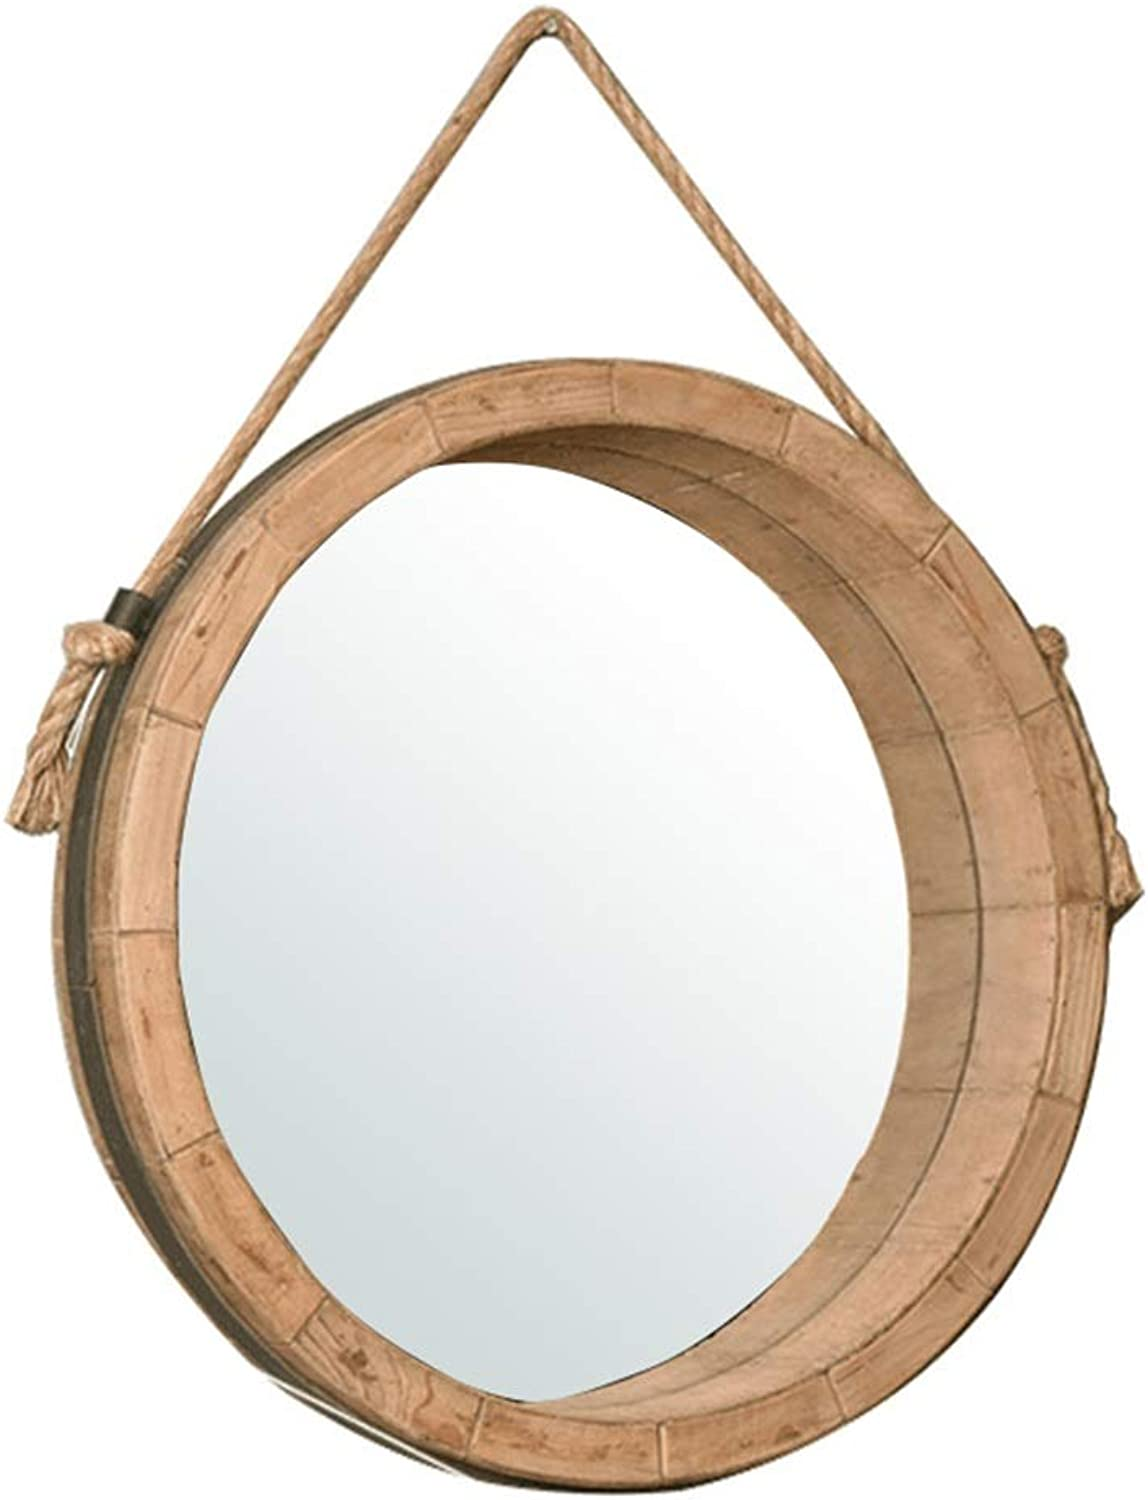 Nordic Makeup Round Mirror Bathroom Decoration Wall Hanging Mirrors Wood and Hemp Rope Design Decorative Mirror Holder (color   Wood color, Size   45CM)